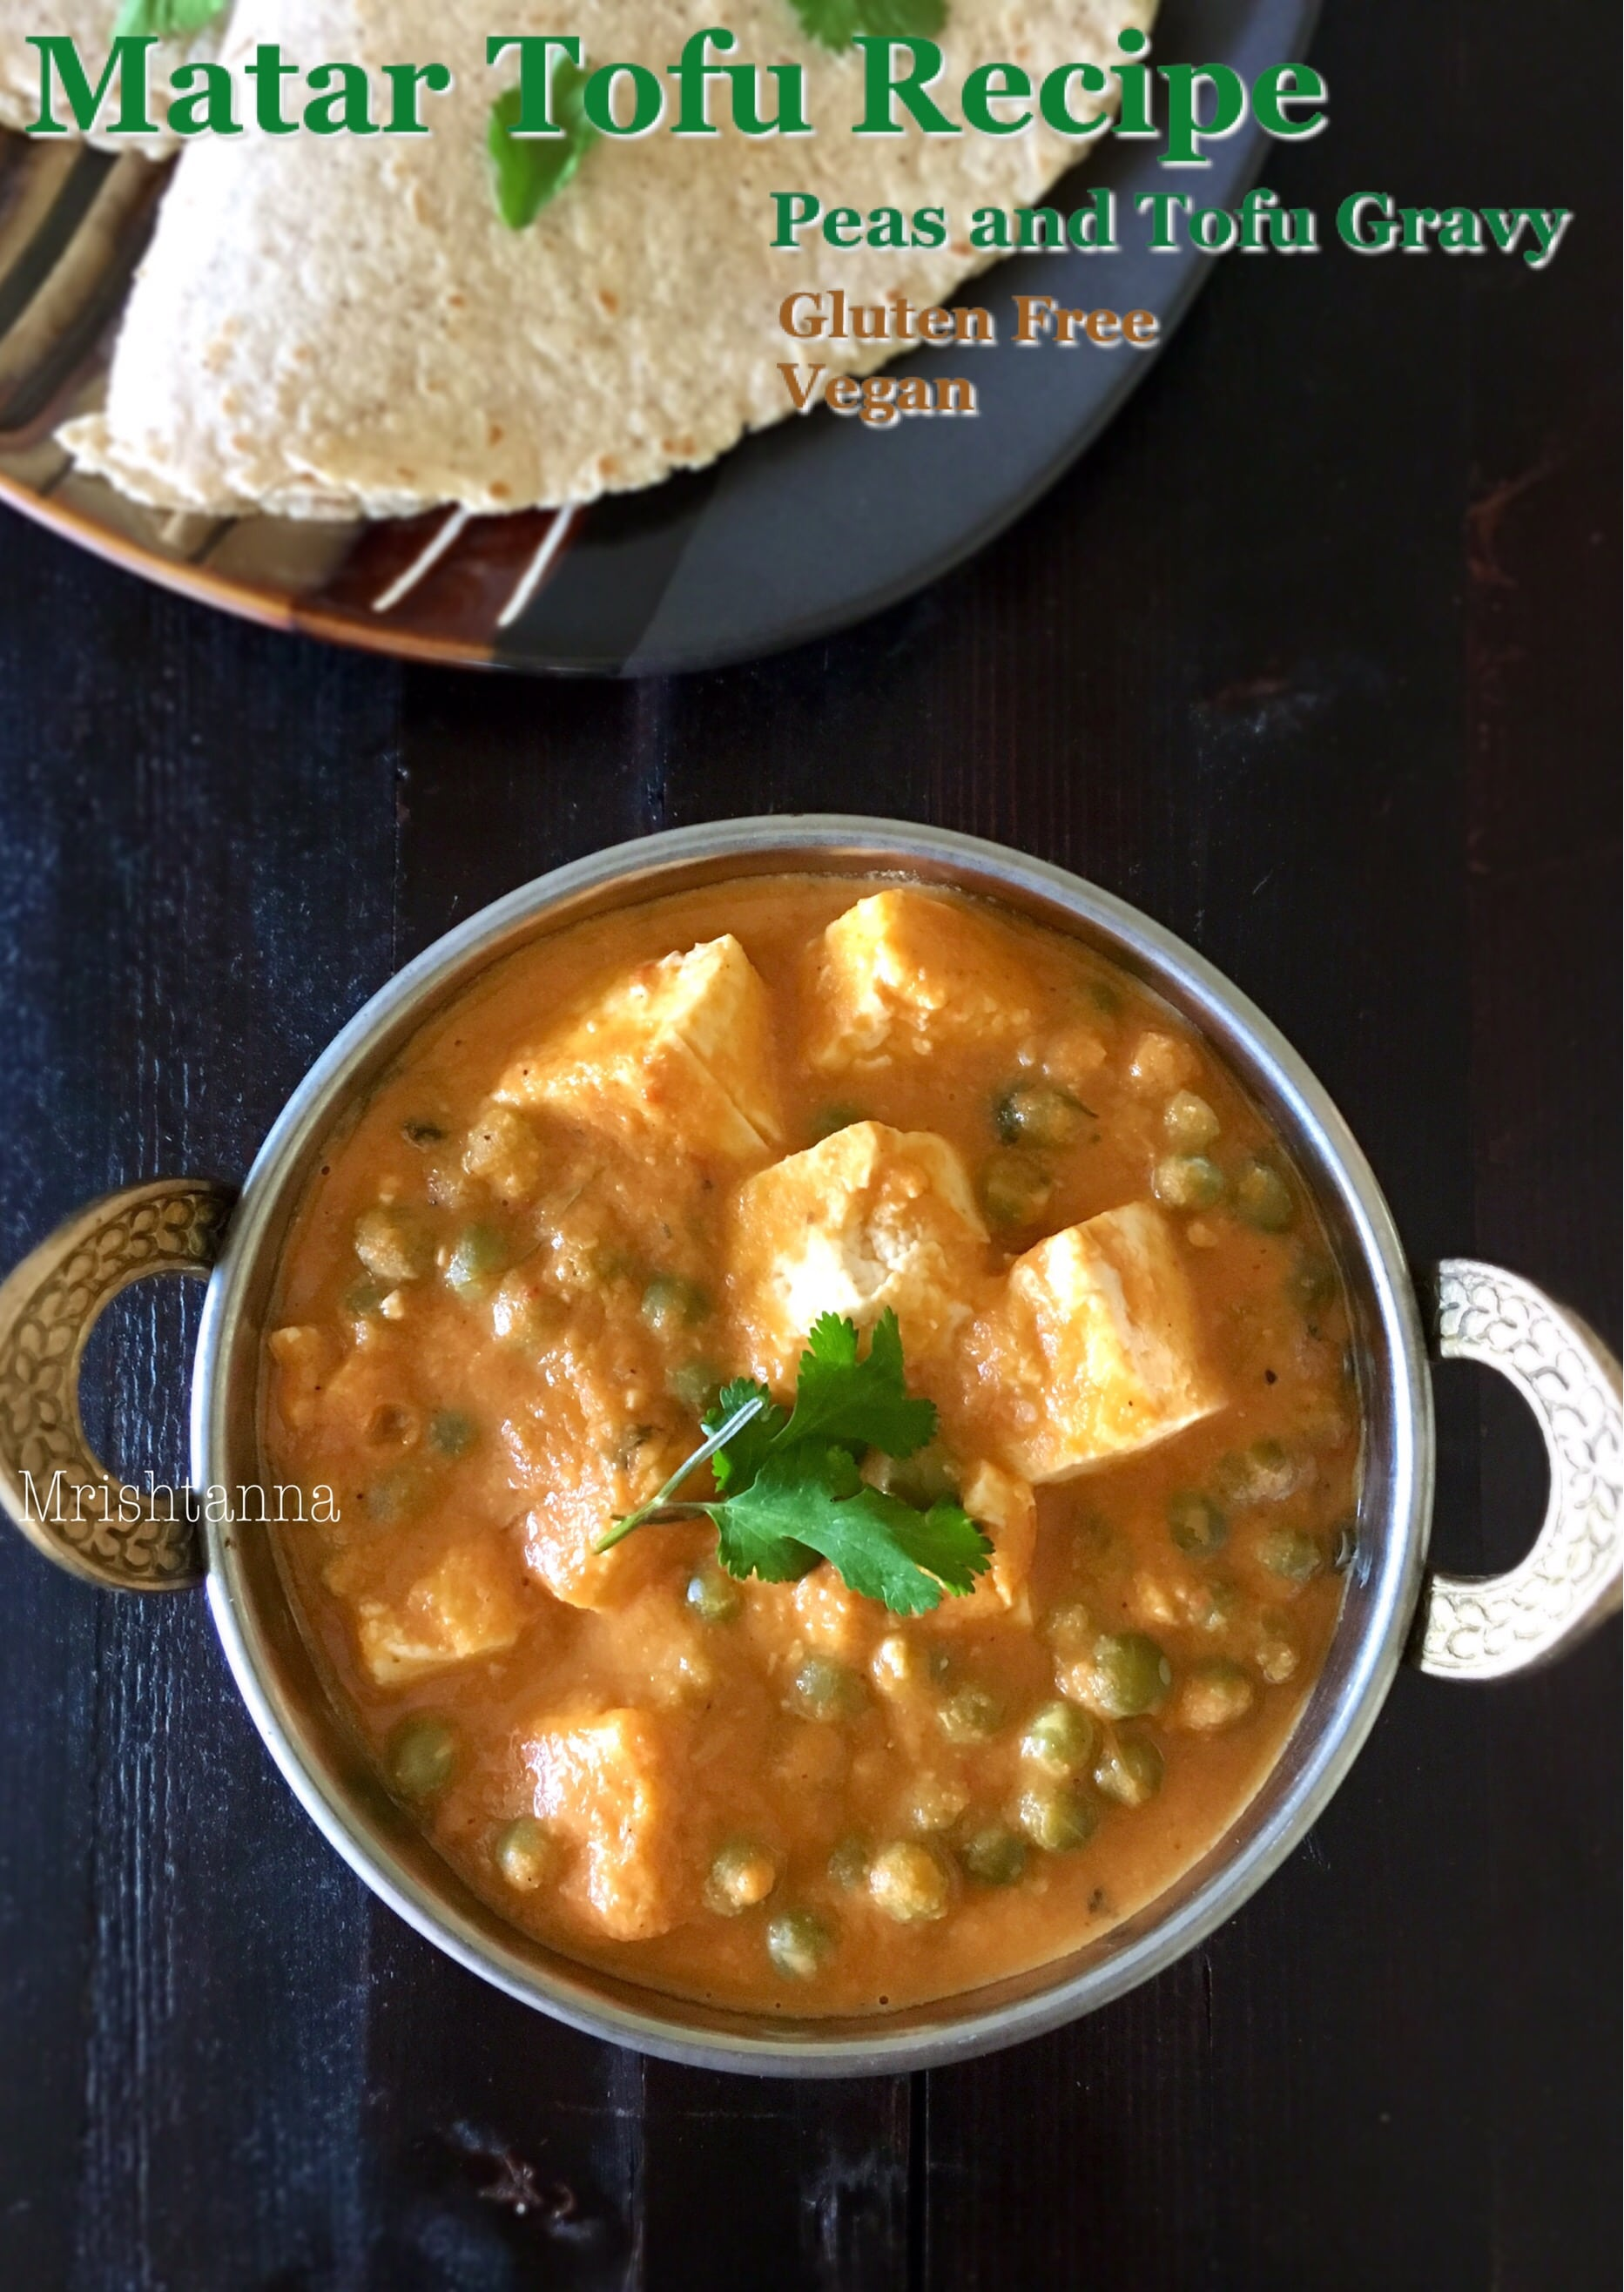 A bowl of tofu matar gravy on the table along with roti